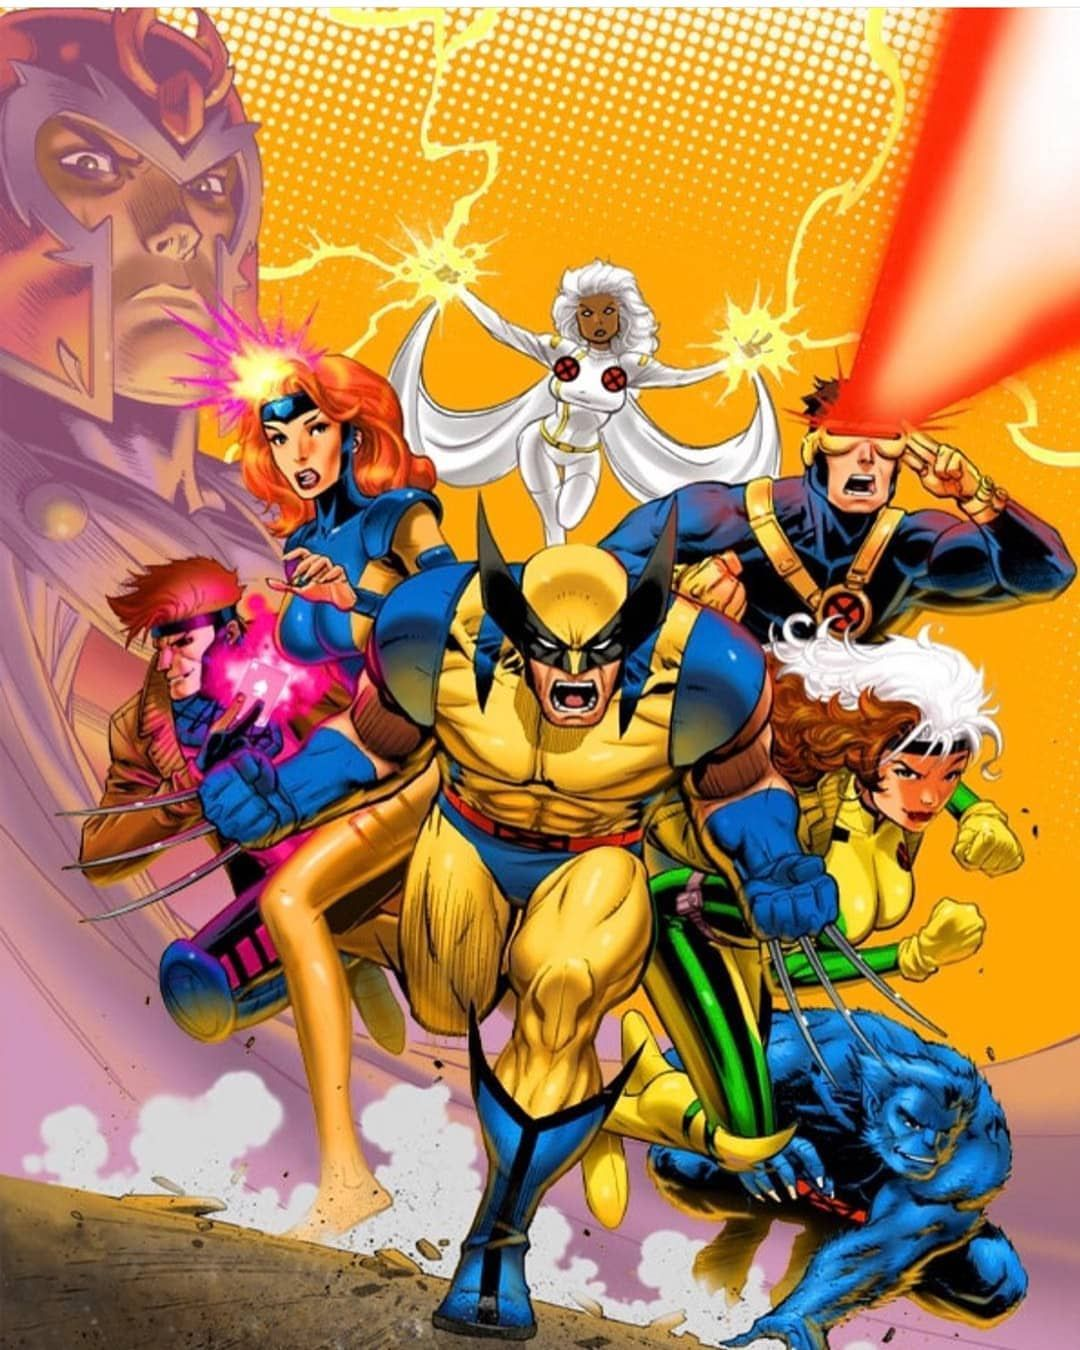 X Men 90s Was The Best Thorragnarok Avengers Spidermanhomecoming Justiceleague Captainamerica Ironman Thor X Men Comic Book Collection Marvel X